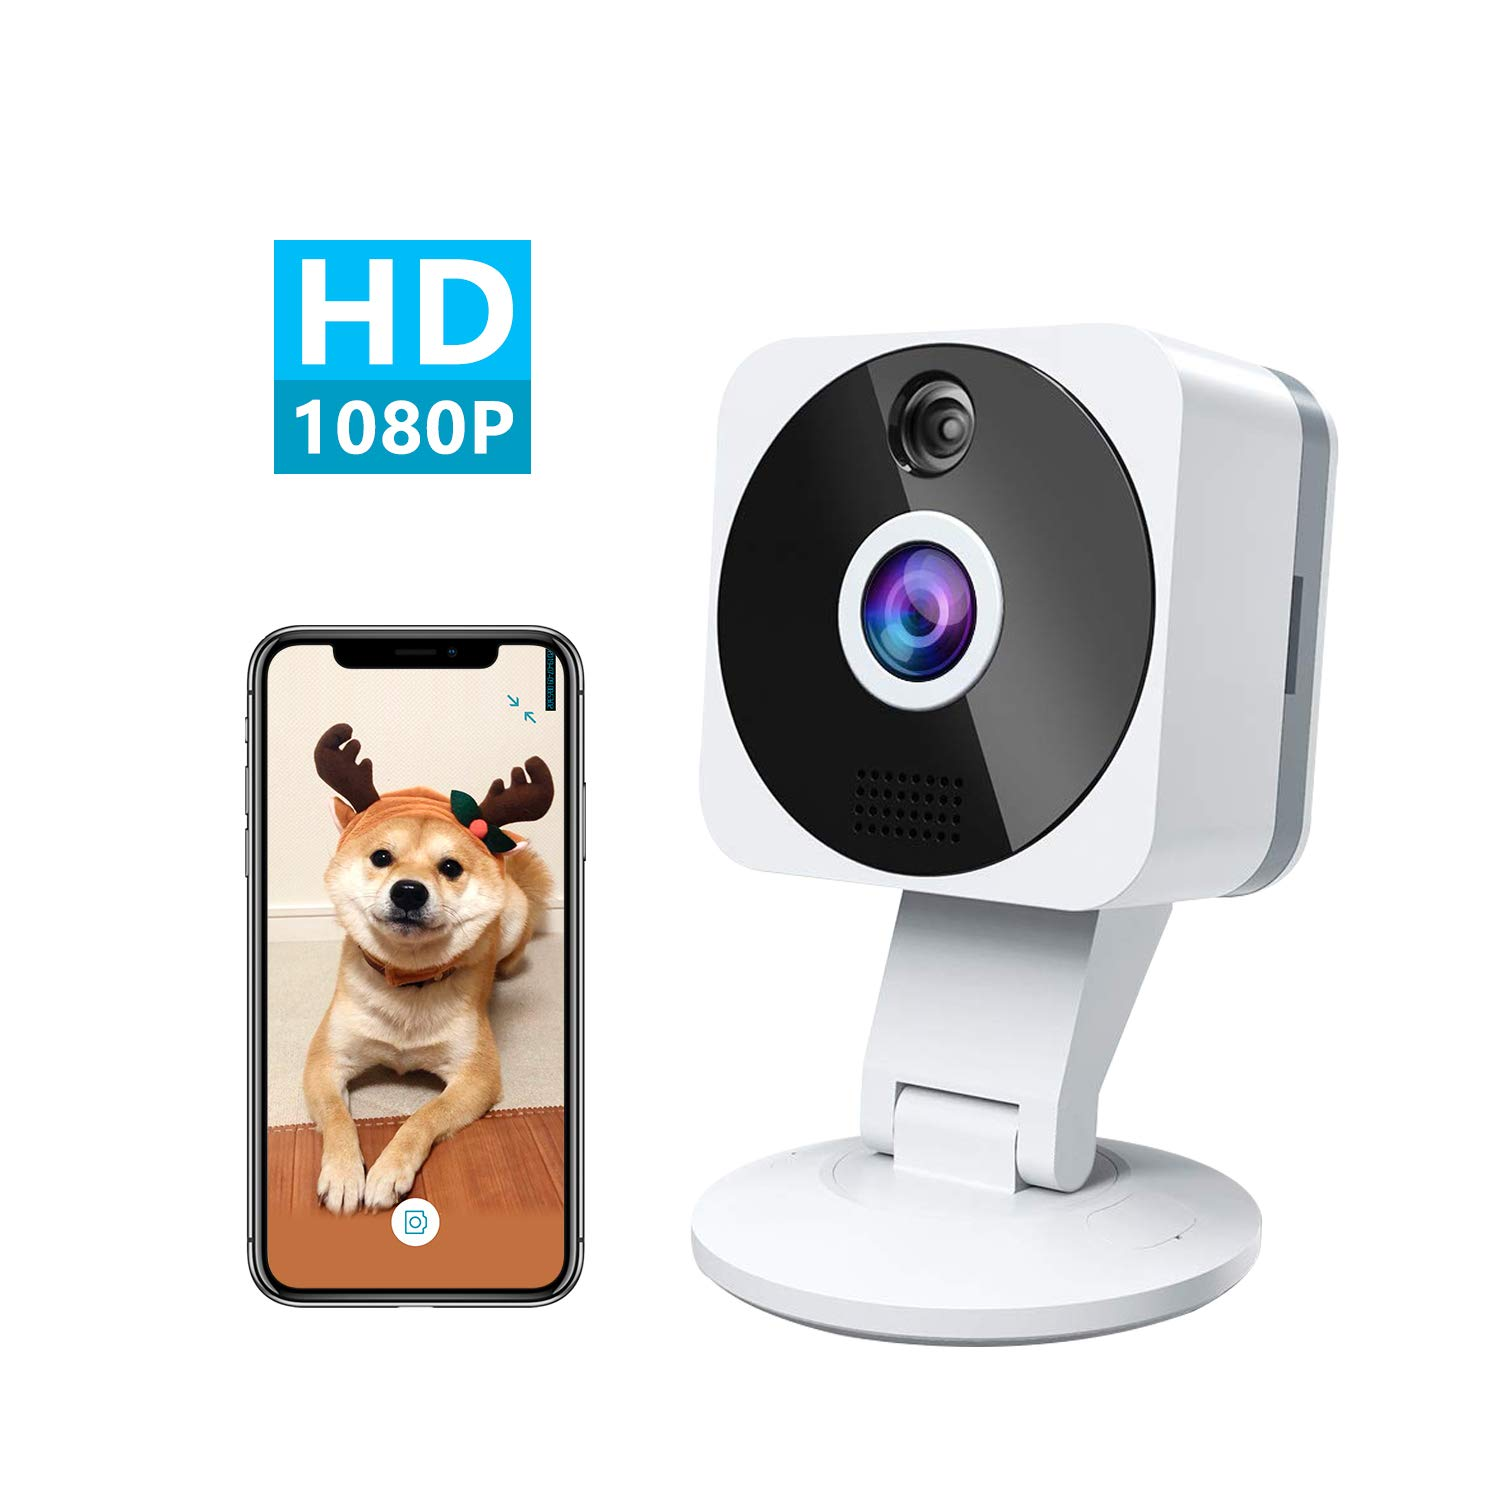 Wireless Smart Home Camera, 1080p HD Indoor 2.4G IP Security Surveillance System with Night Vision 2-Way Audio for Home Office Baby Nanny Pet Monitor with iOS, Android App